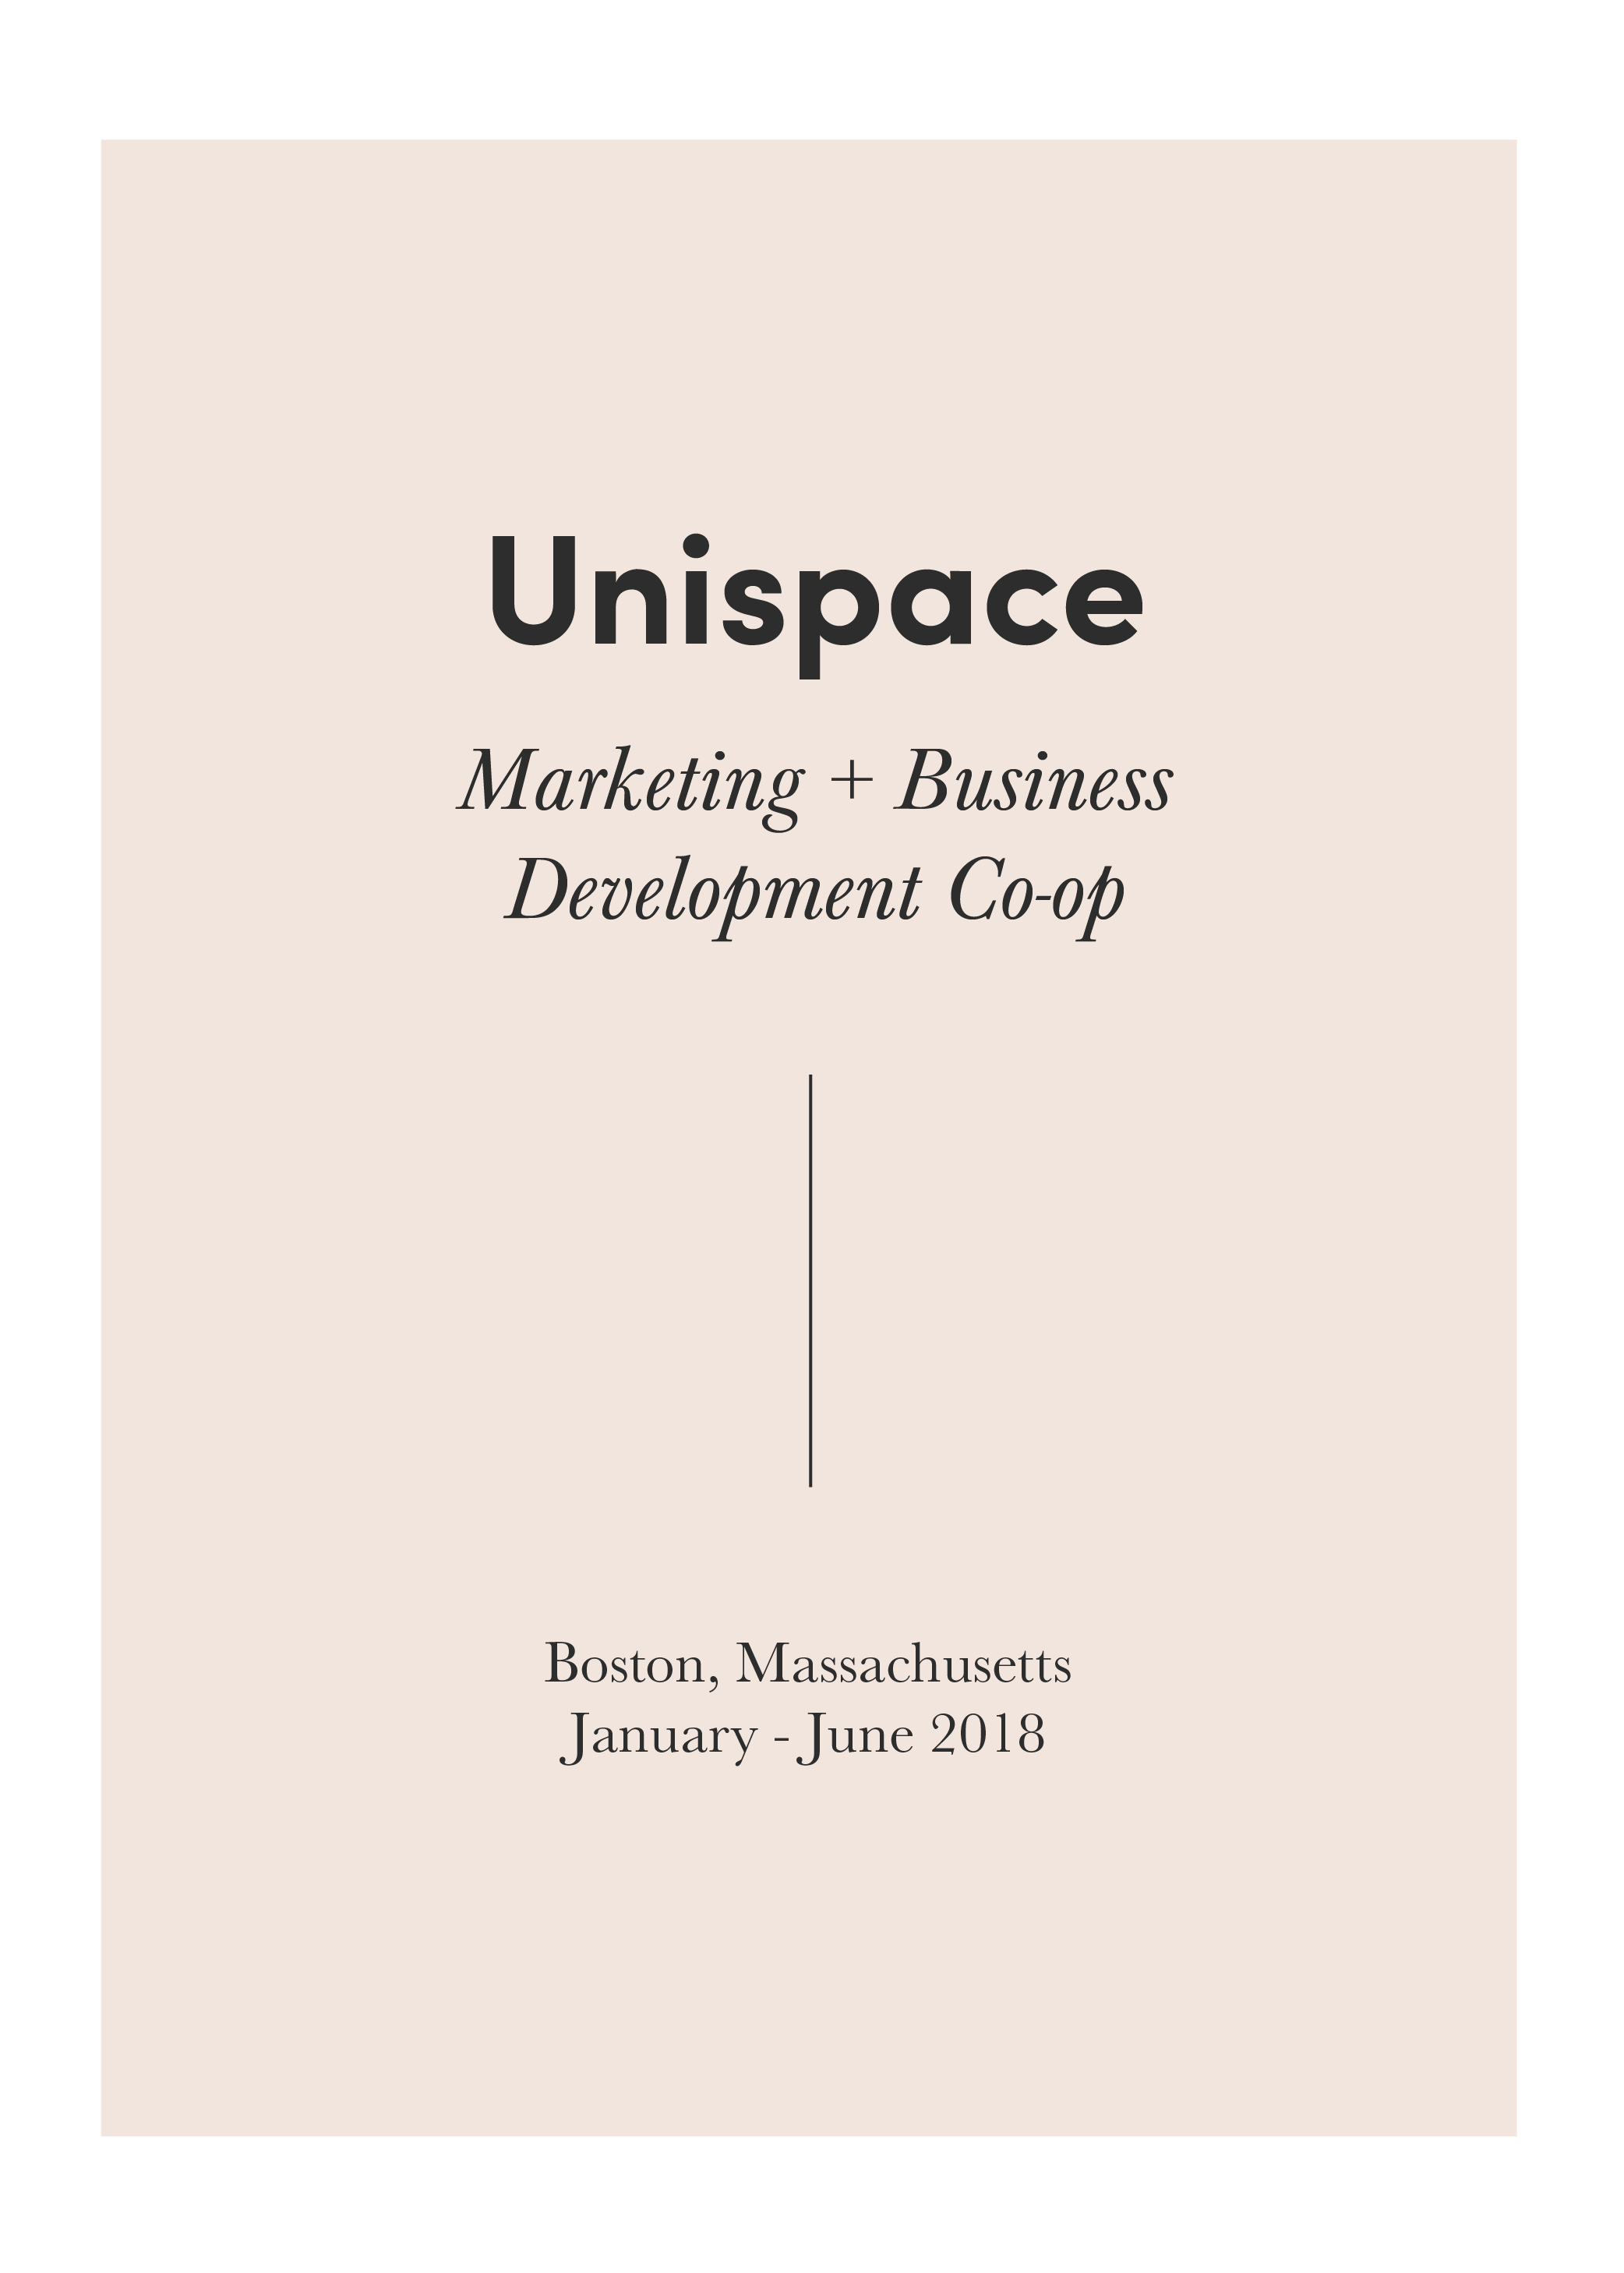 Unispace is a global leading business + commercial interior design firm. Here, I had the opportunity to help win strategic clients through the creation of proposals and presentations. I helped the business development team communicate the company's methodology and unique selling points. Beyond this, I assisted the marketing team with public relations, social media planning, case study photo shoots, and market research.